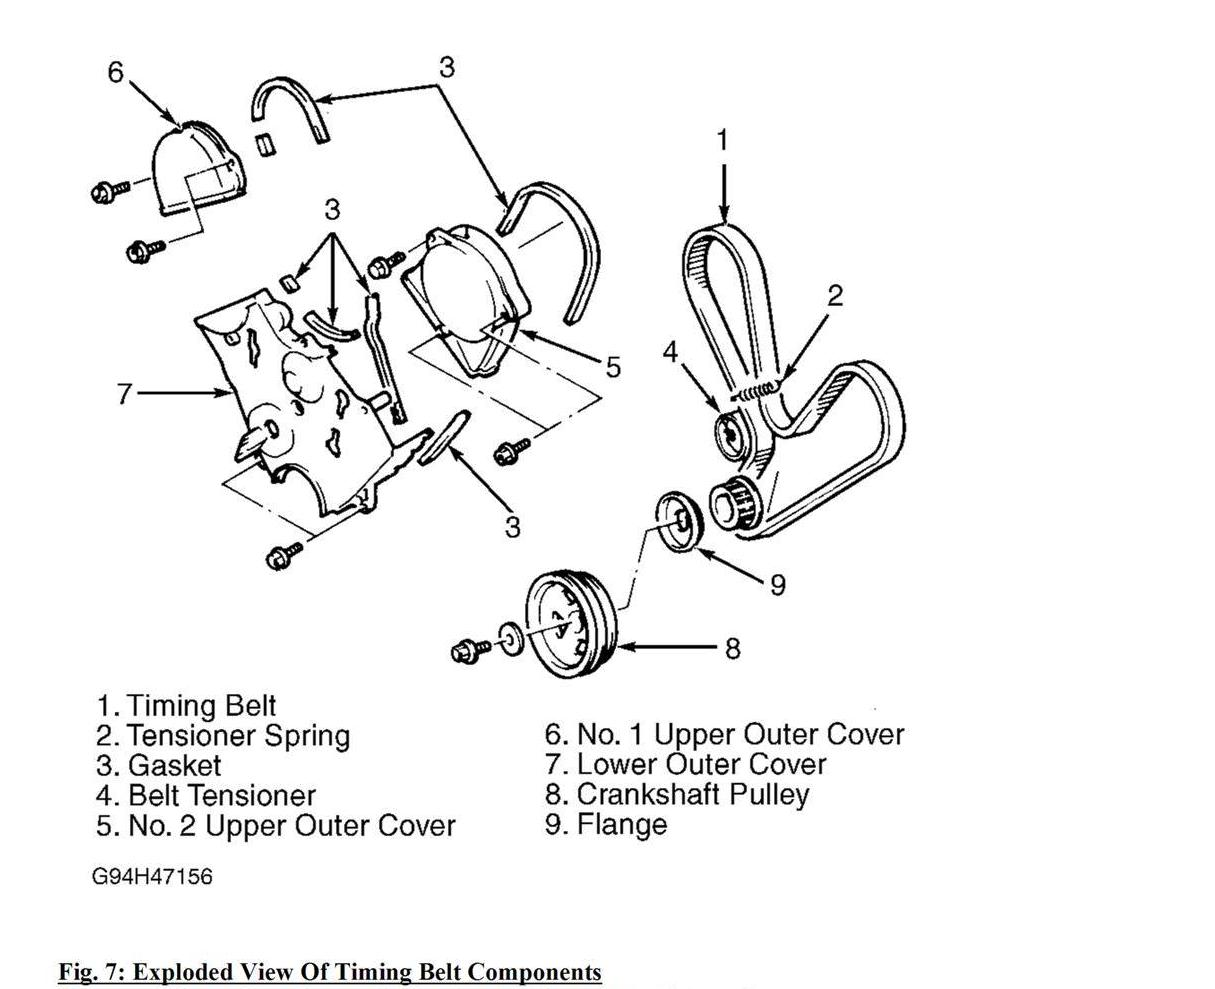 firing order for 1999 chevy silverado 5 3 v8 diagram html